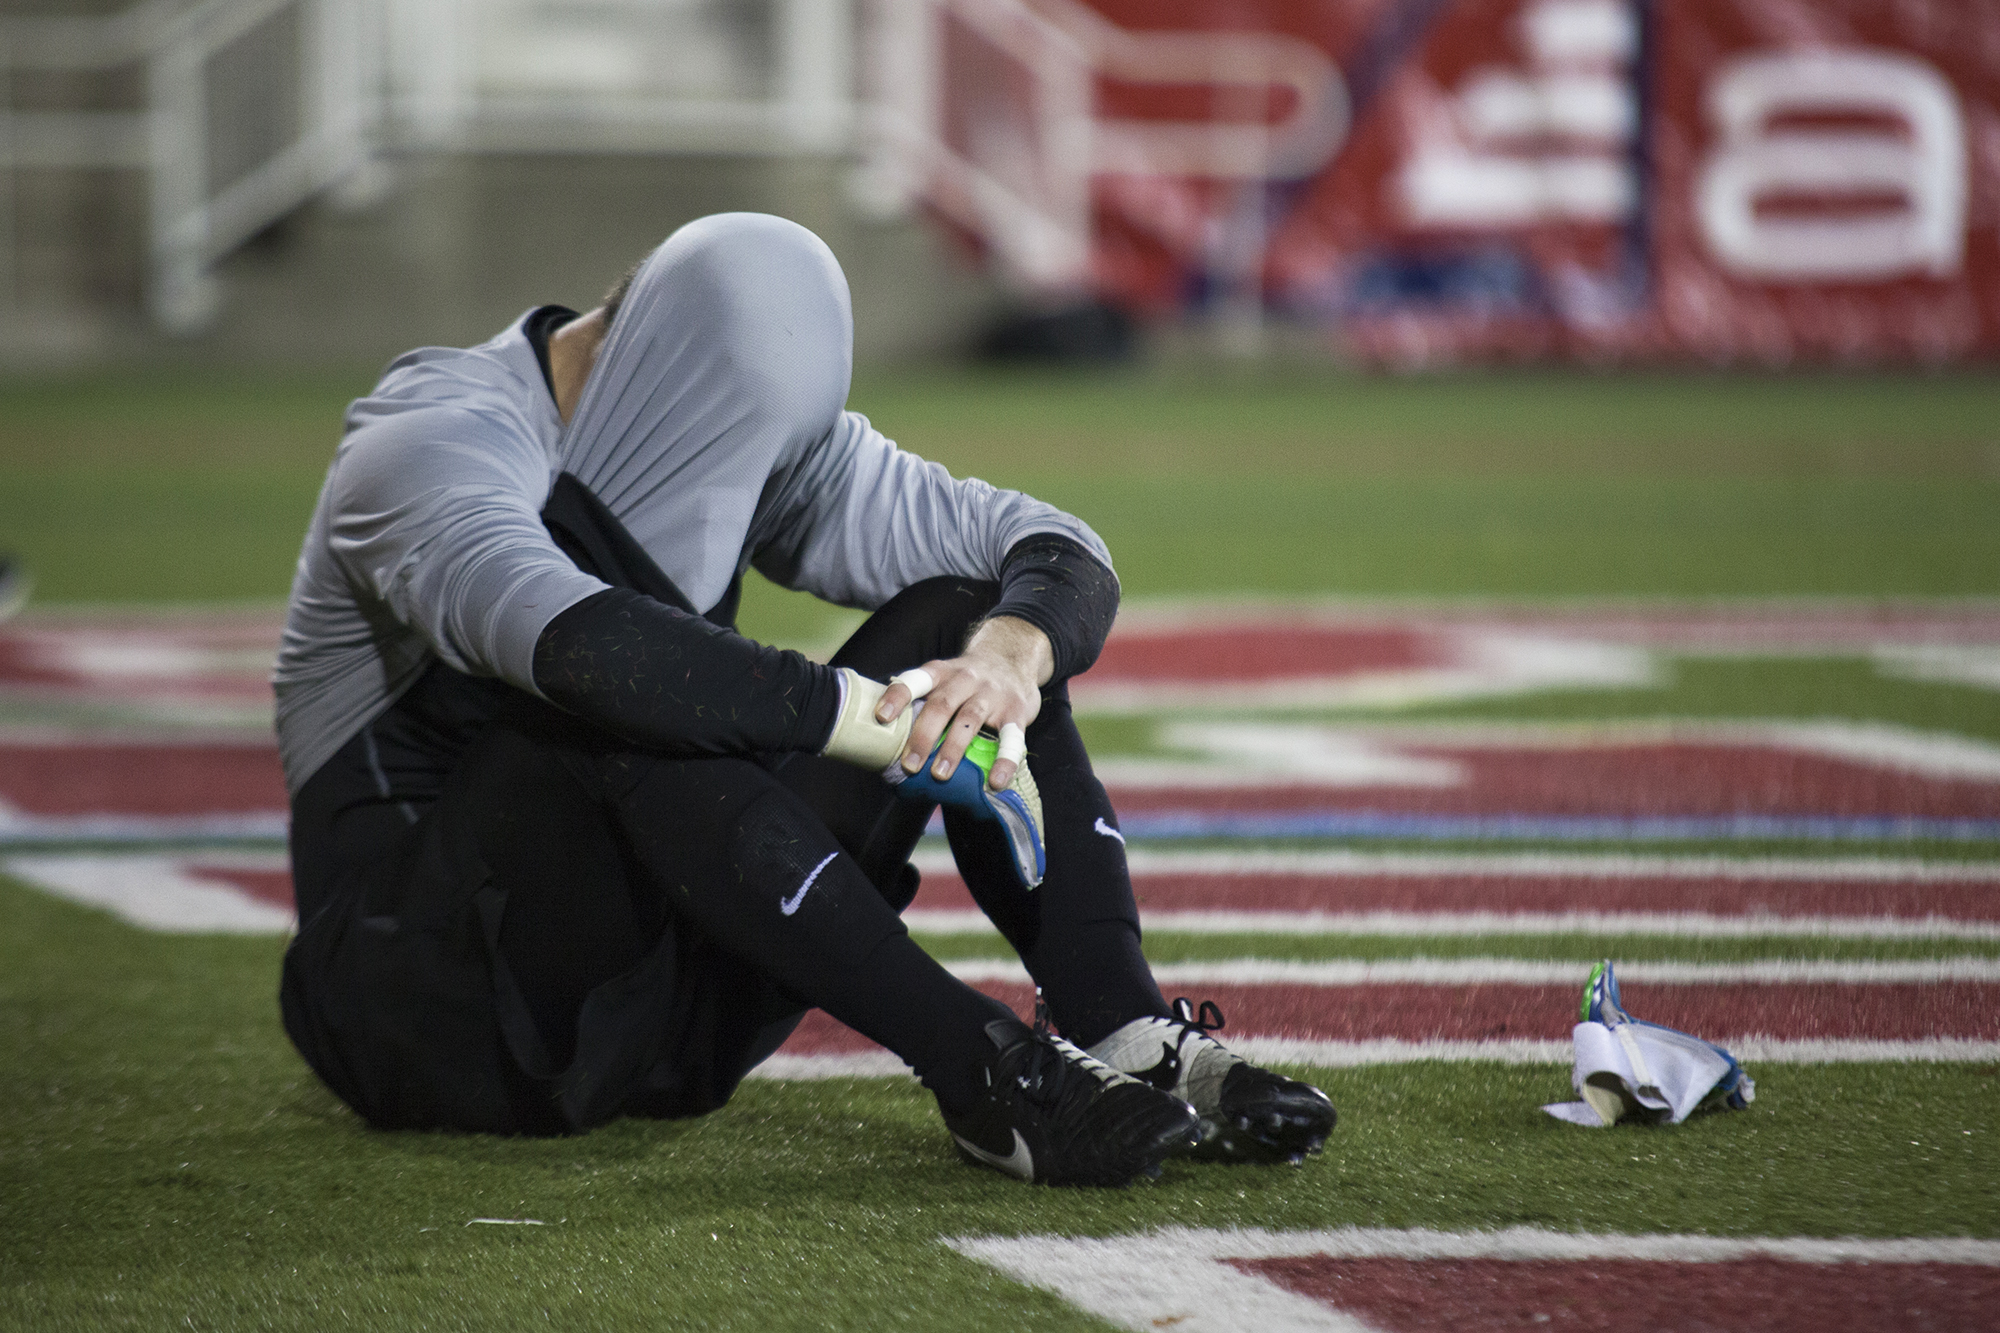 Stony Brook goalkeeper Jason Orban sits with his face covered after the men's soccer team's 3-2 loss against Binghamton on Nov. 7, 2015. The match went into double overtime as Binghamton managed to meet Stony Brook's 2-0 lead before scoring a goal in the 16th minute of overtime. CHRISTOPHER CAMERON/THE STATESMAN